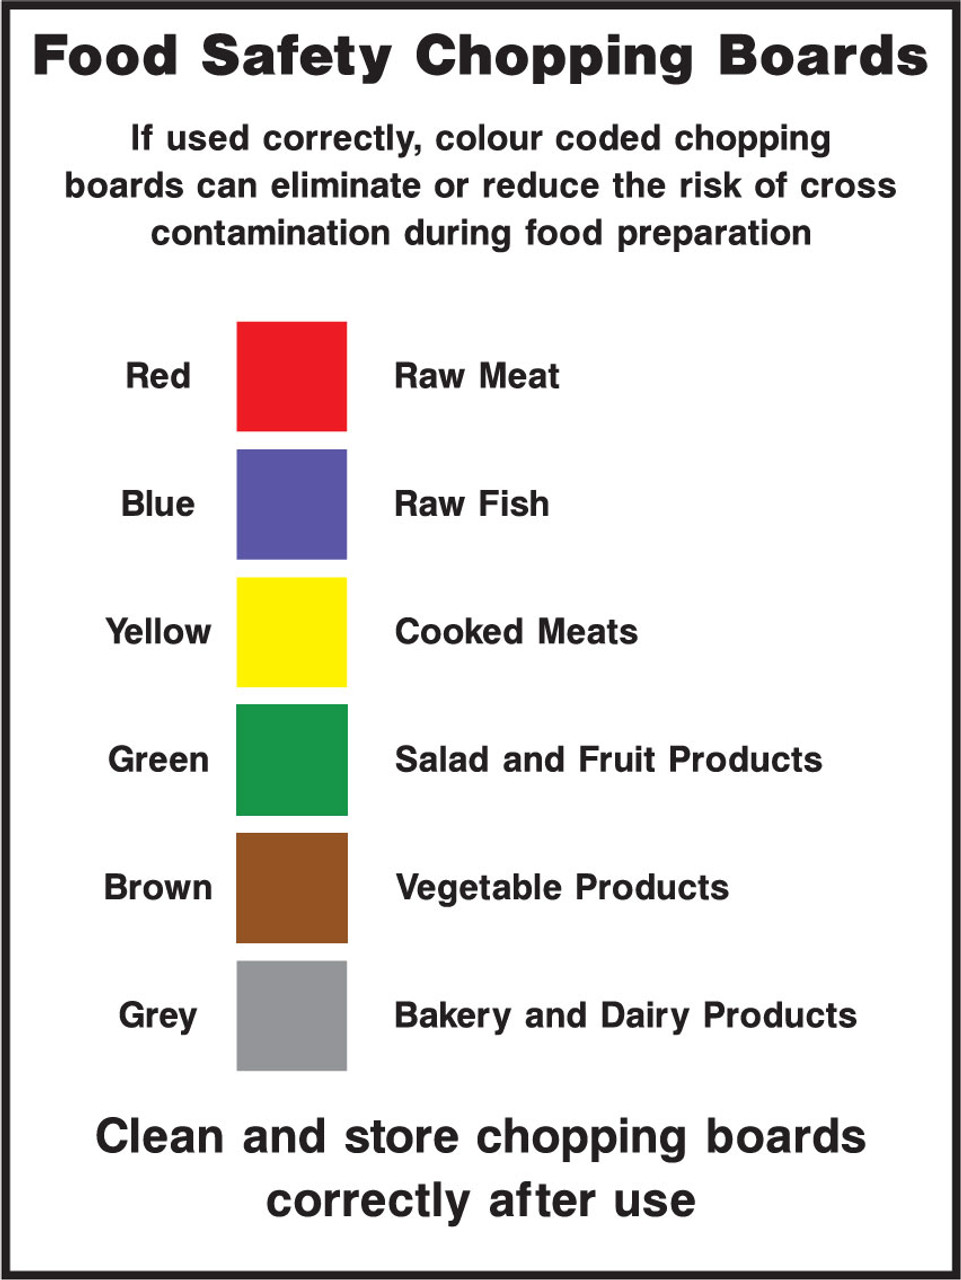 Food Safety Chopping Boards Signs 2 Safety